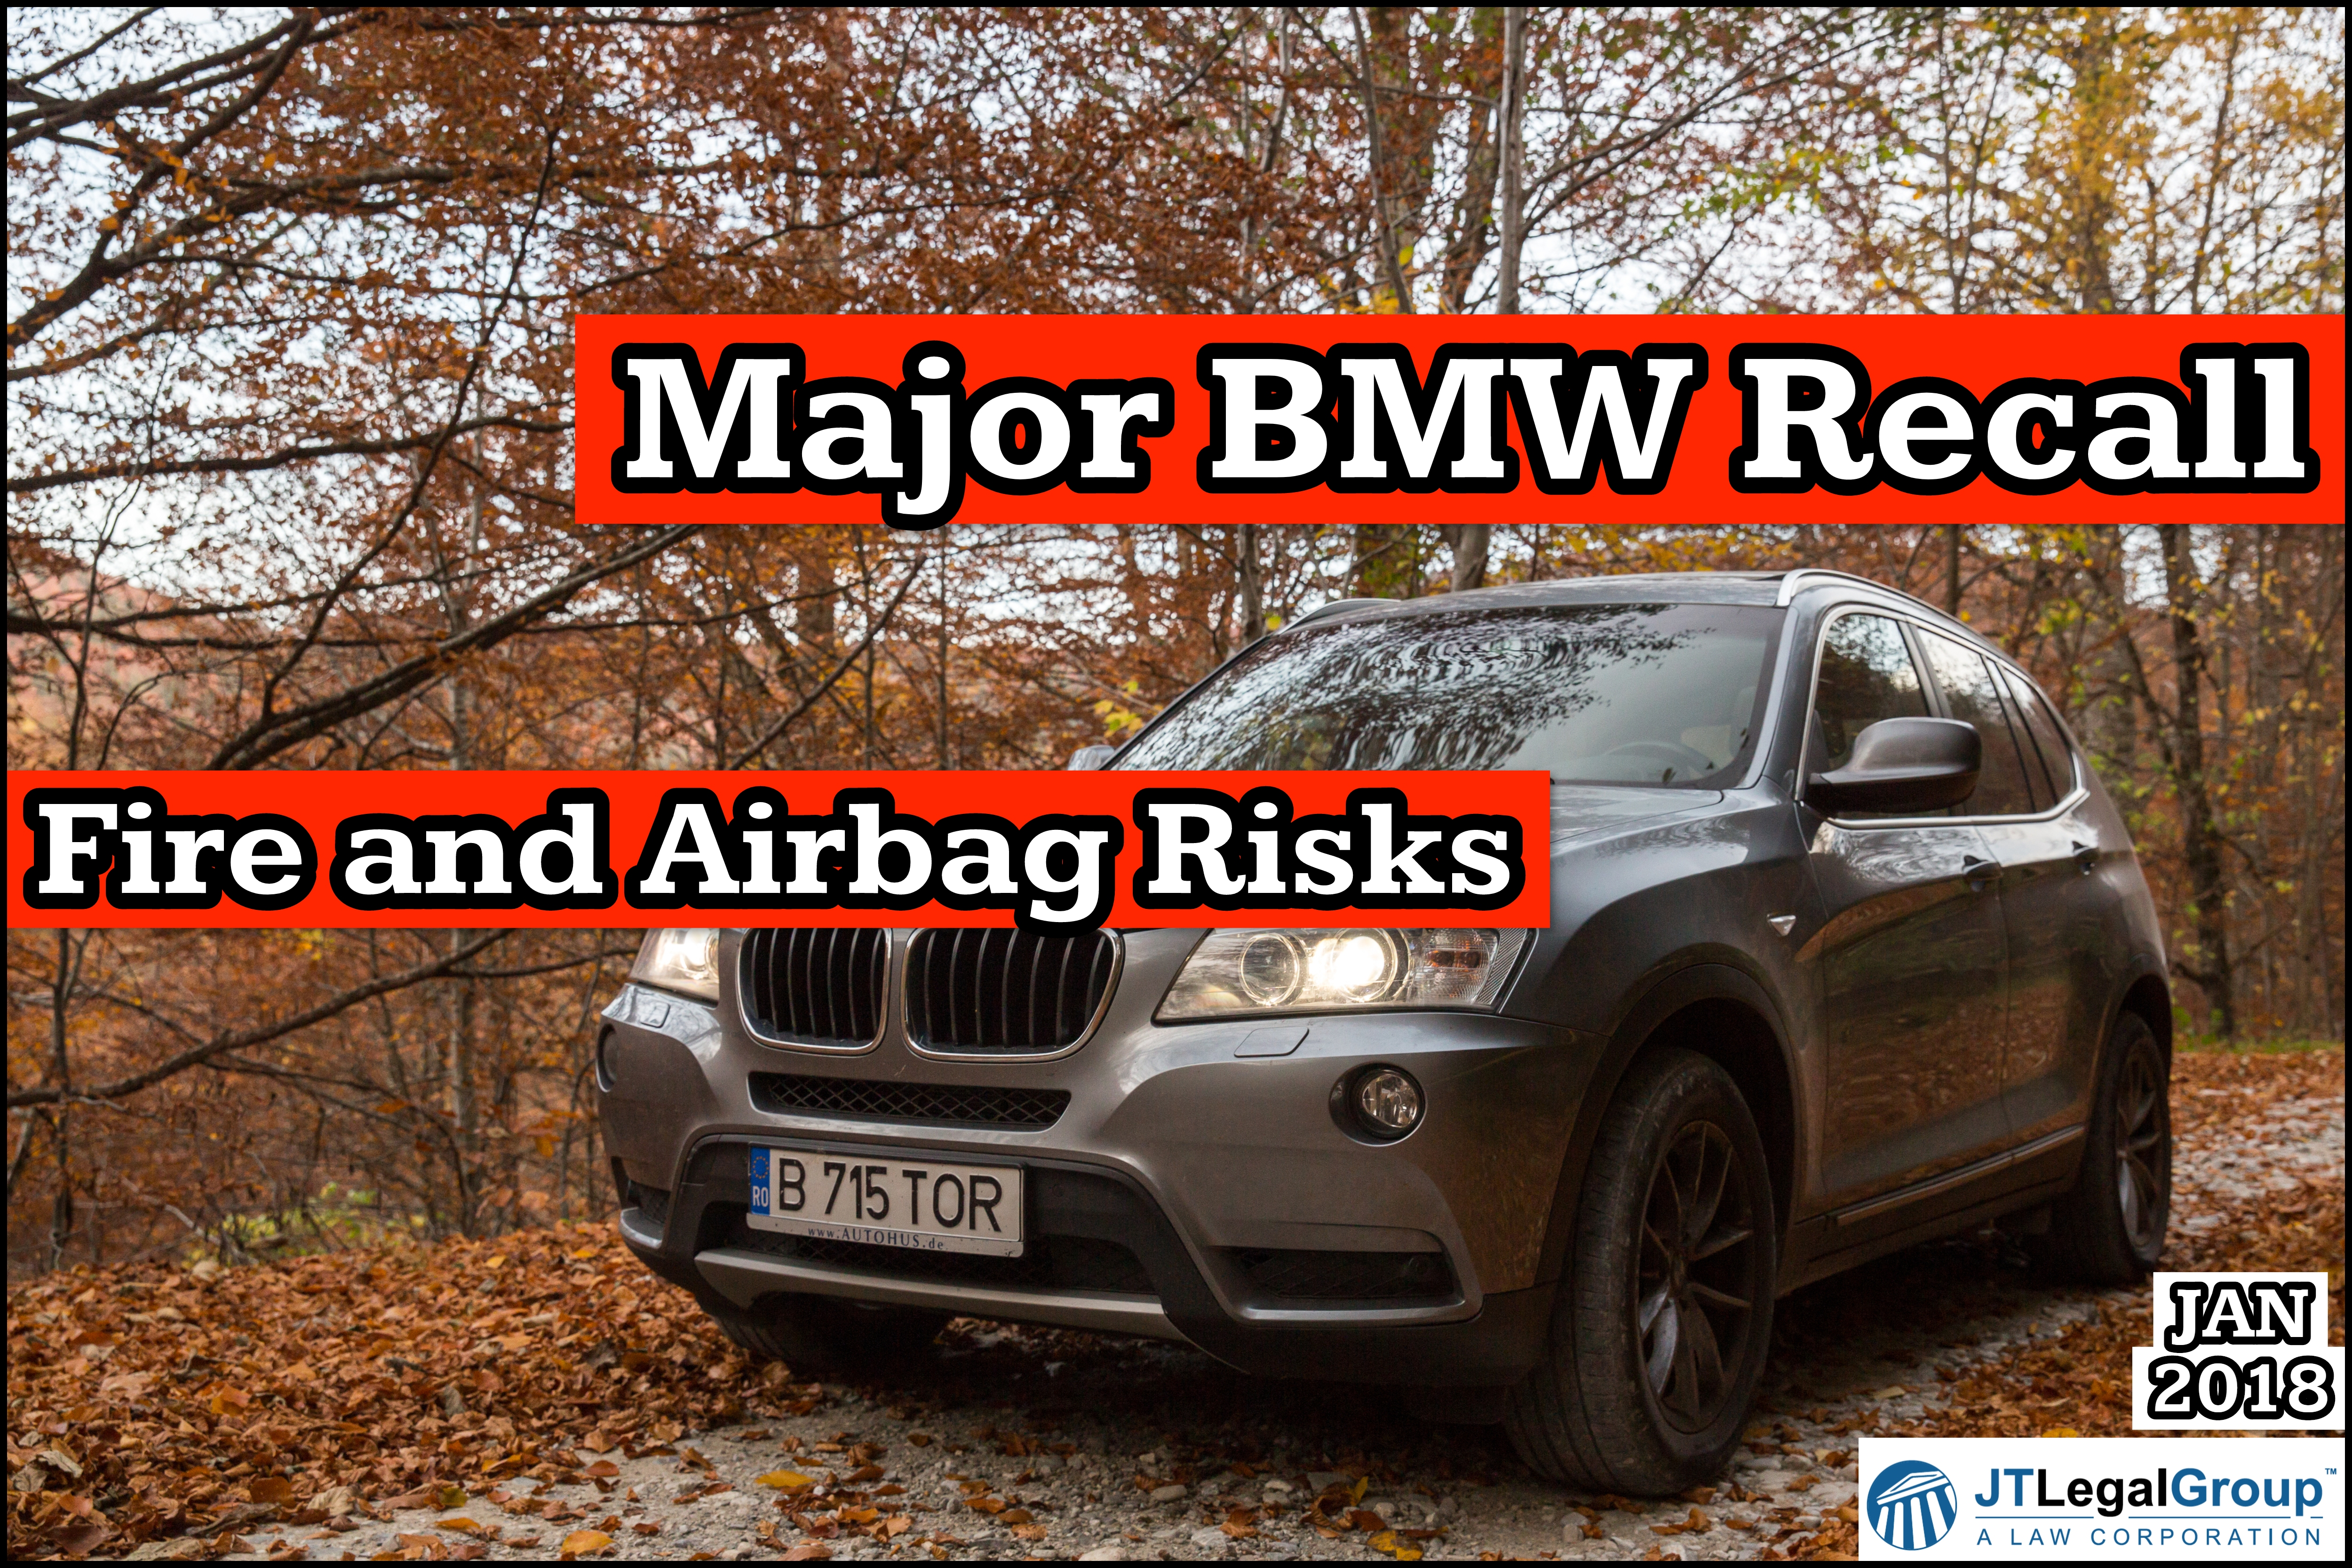 Major BMW Recall Fire and Airbag Risks